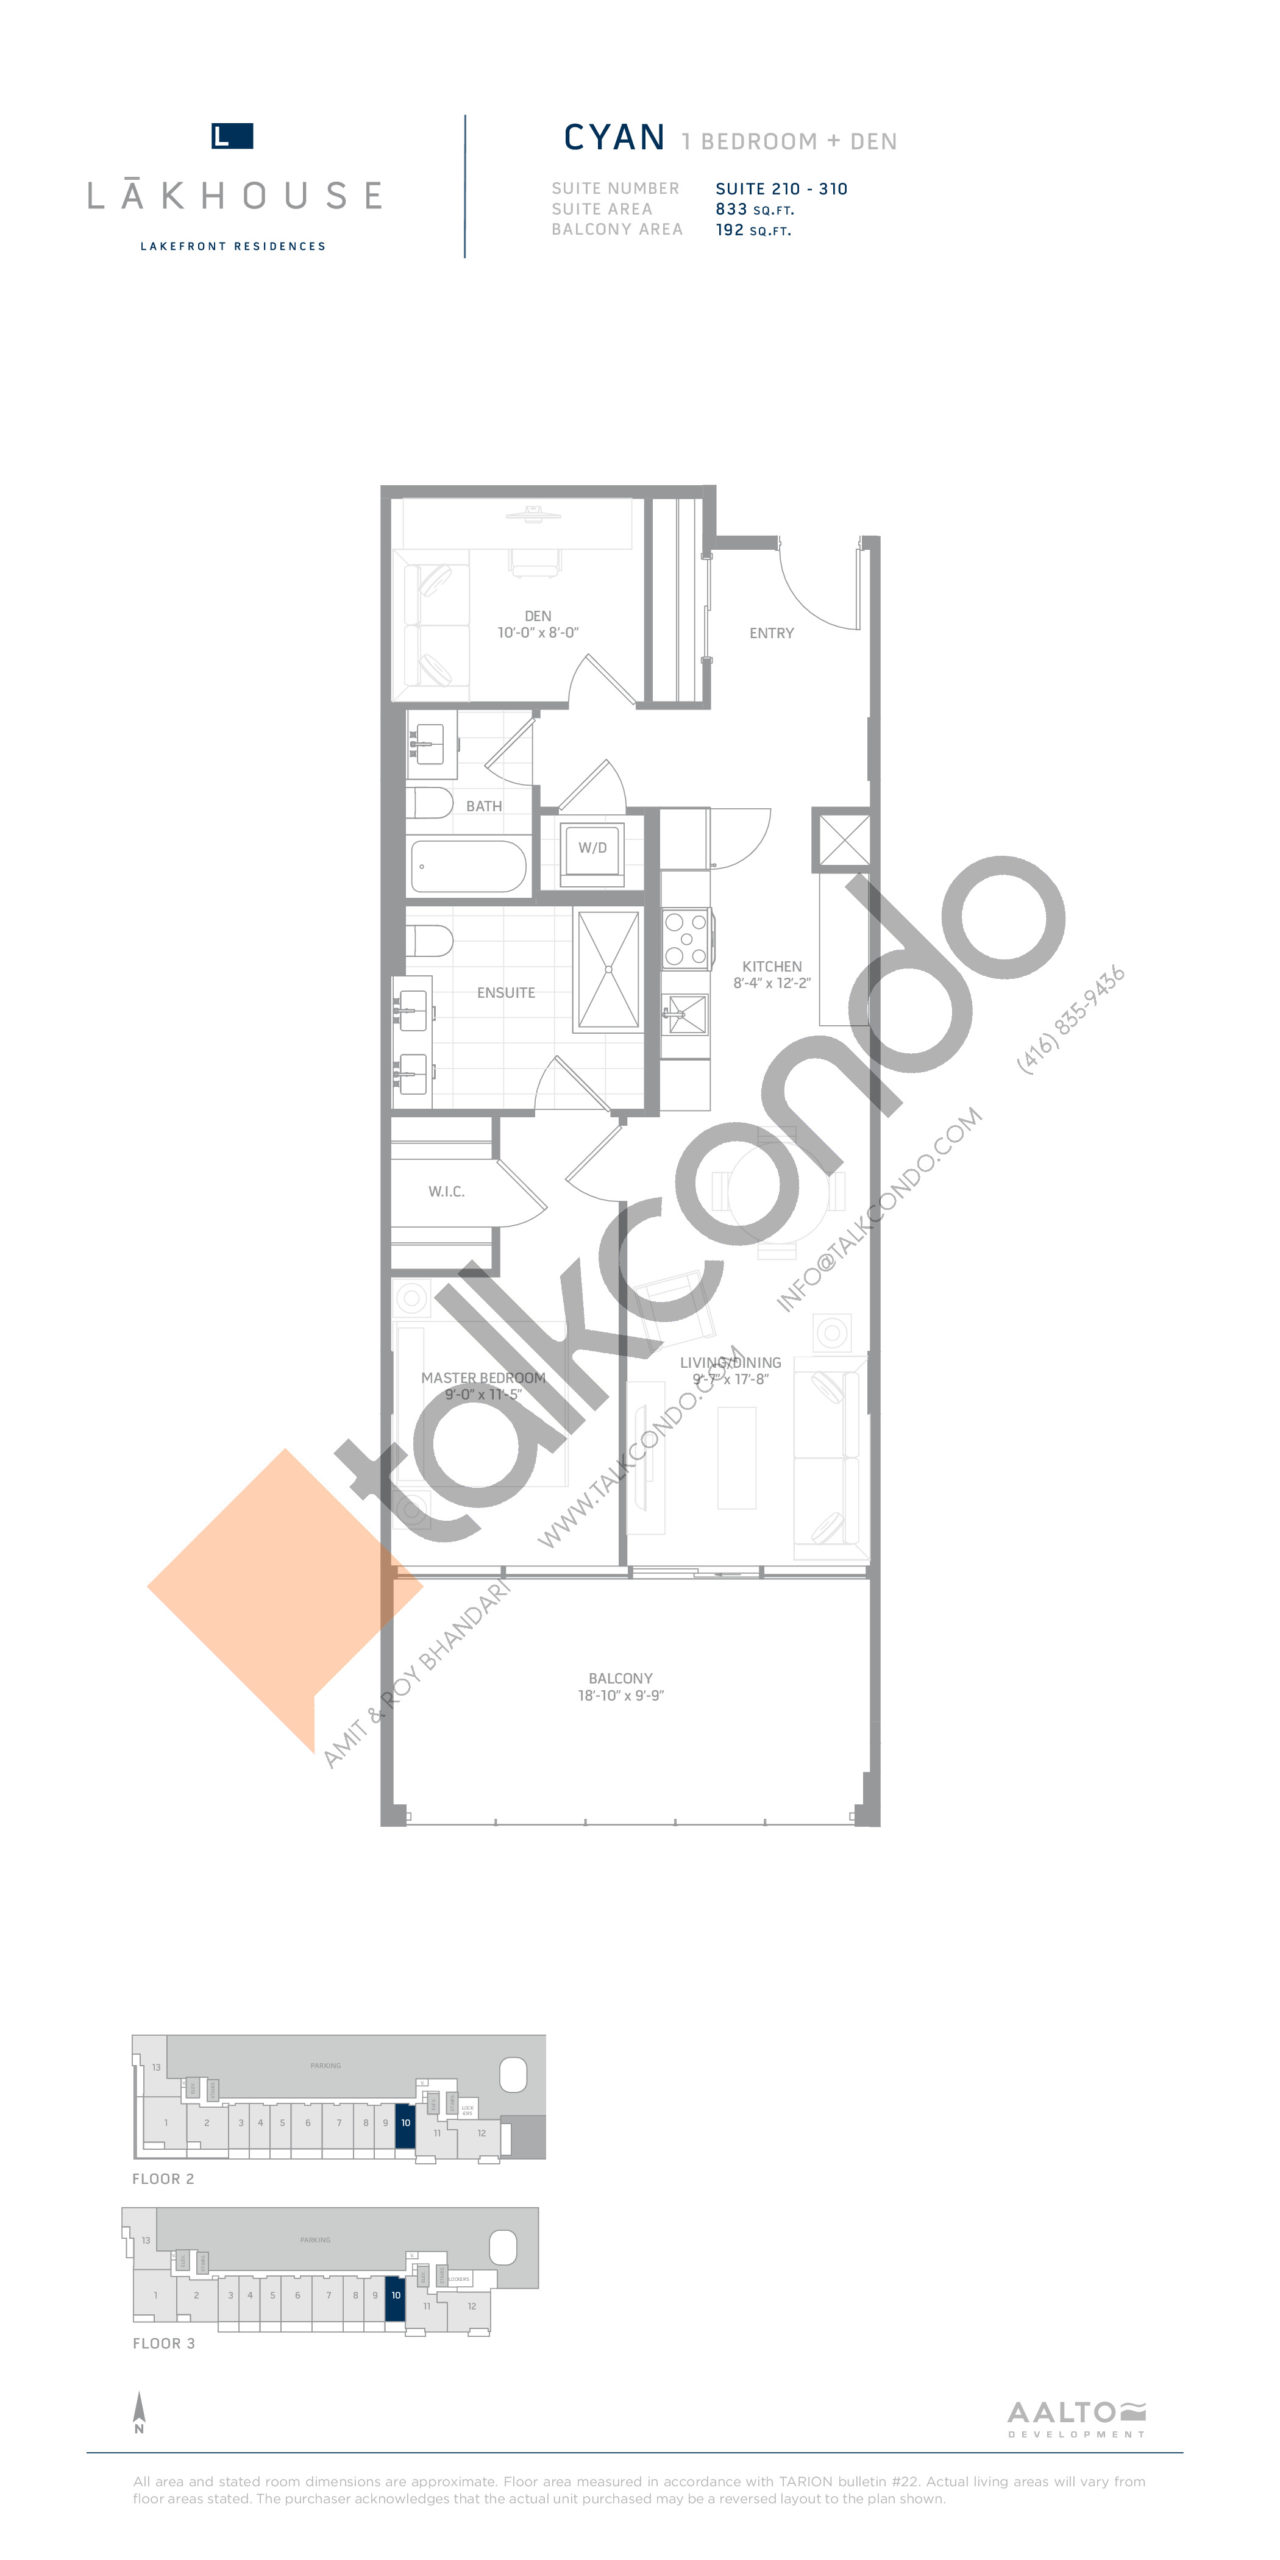 Lakhouse Lakefront Residences Condos Cyan 833 Sq Ft 1 5 Bedrooms